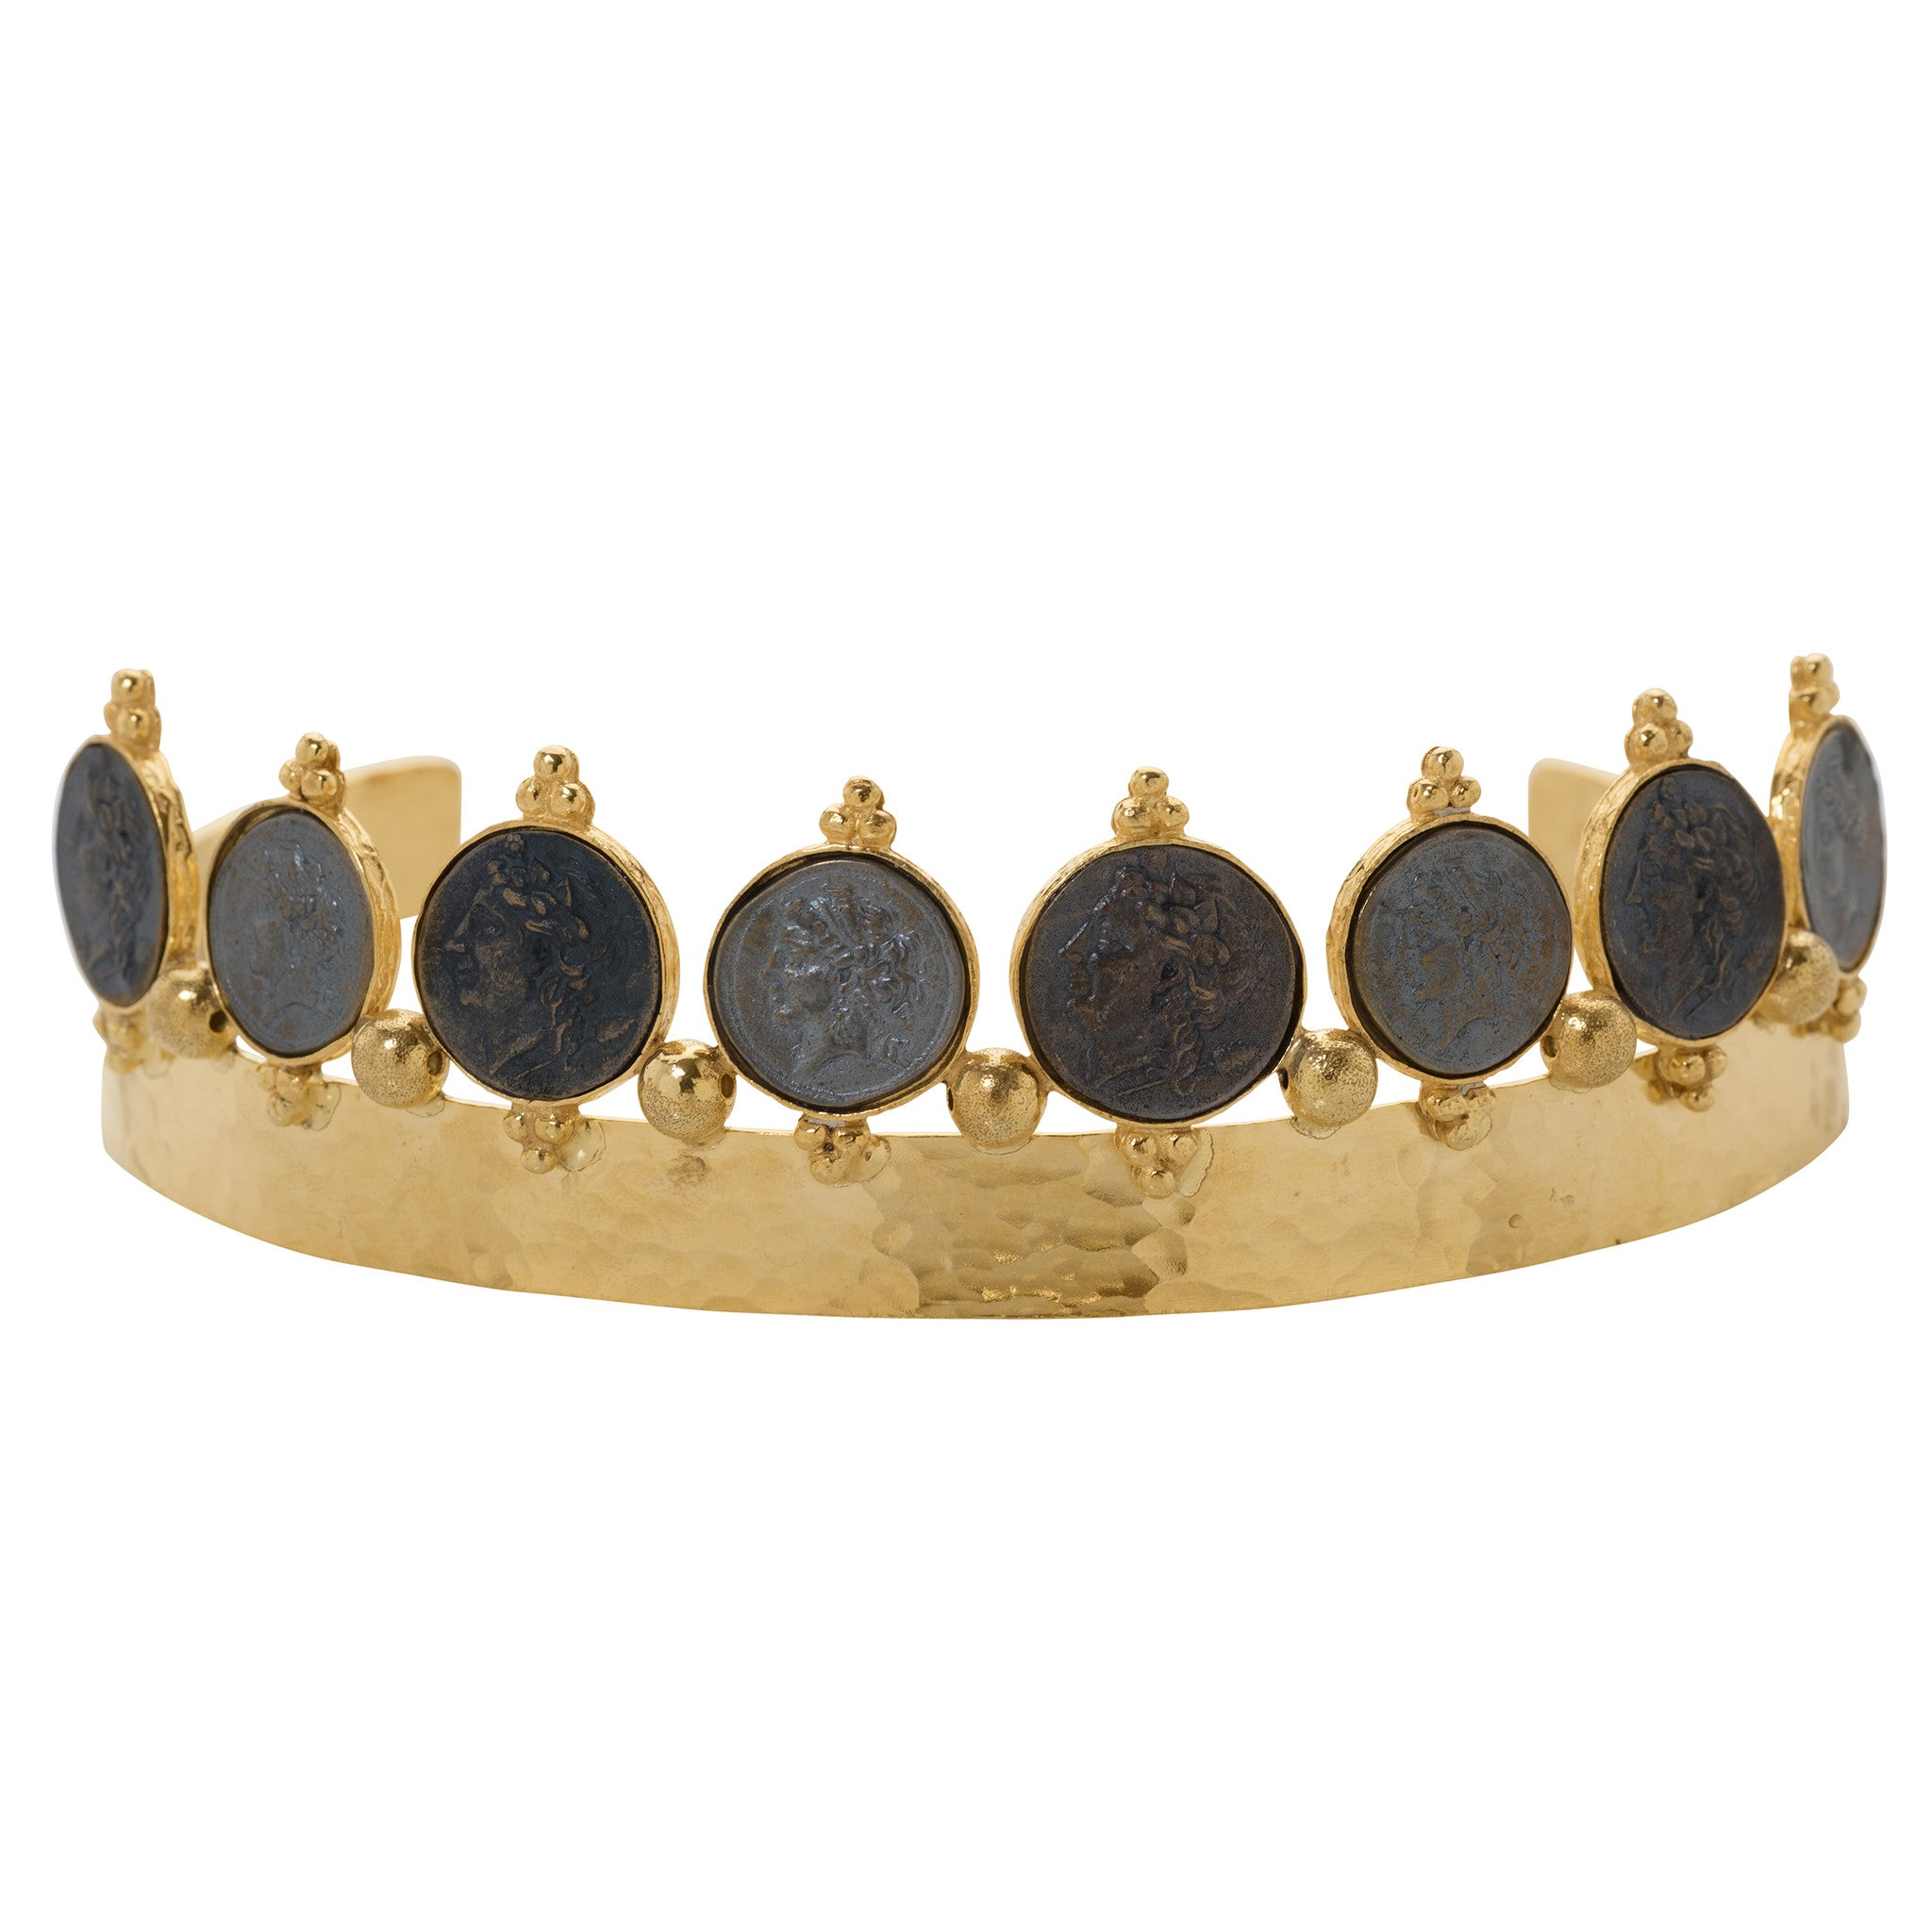 The Demeter Crown